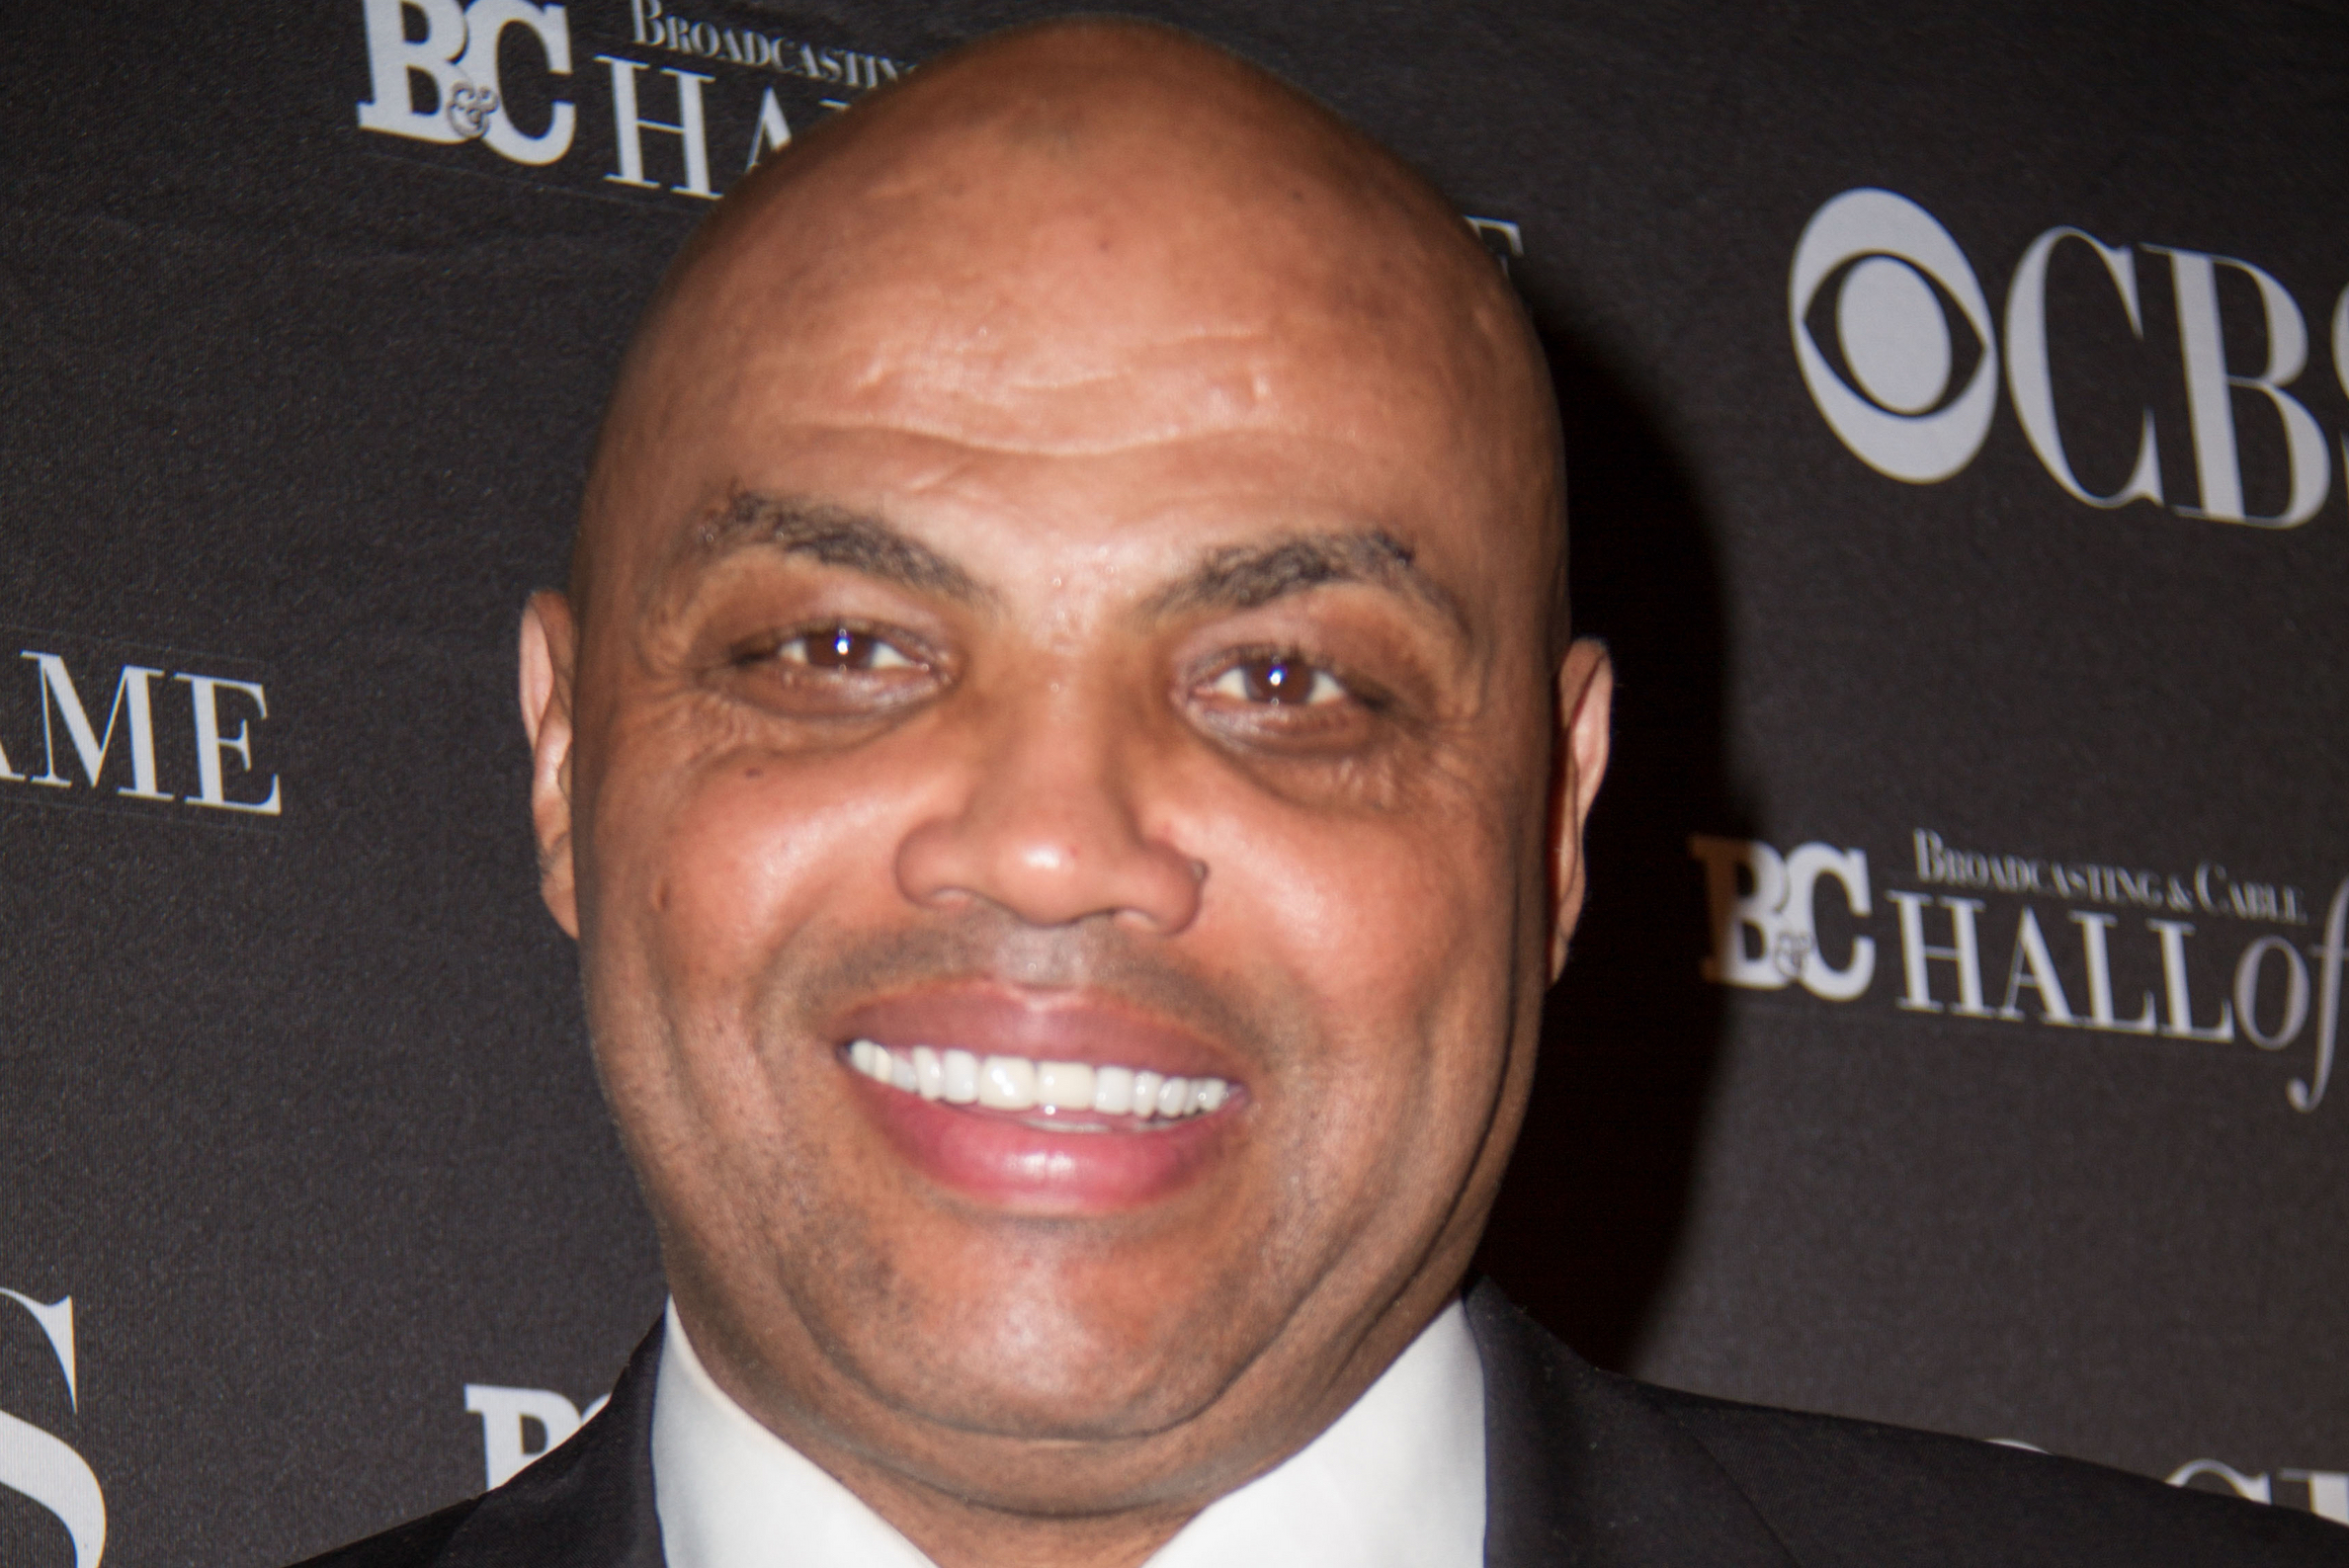 10/18/2016 - Charles Barkley - Broadcasting and Cable Hall of Fame 26th